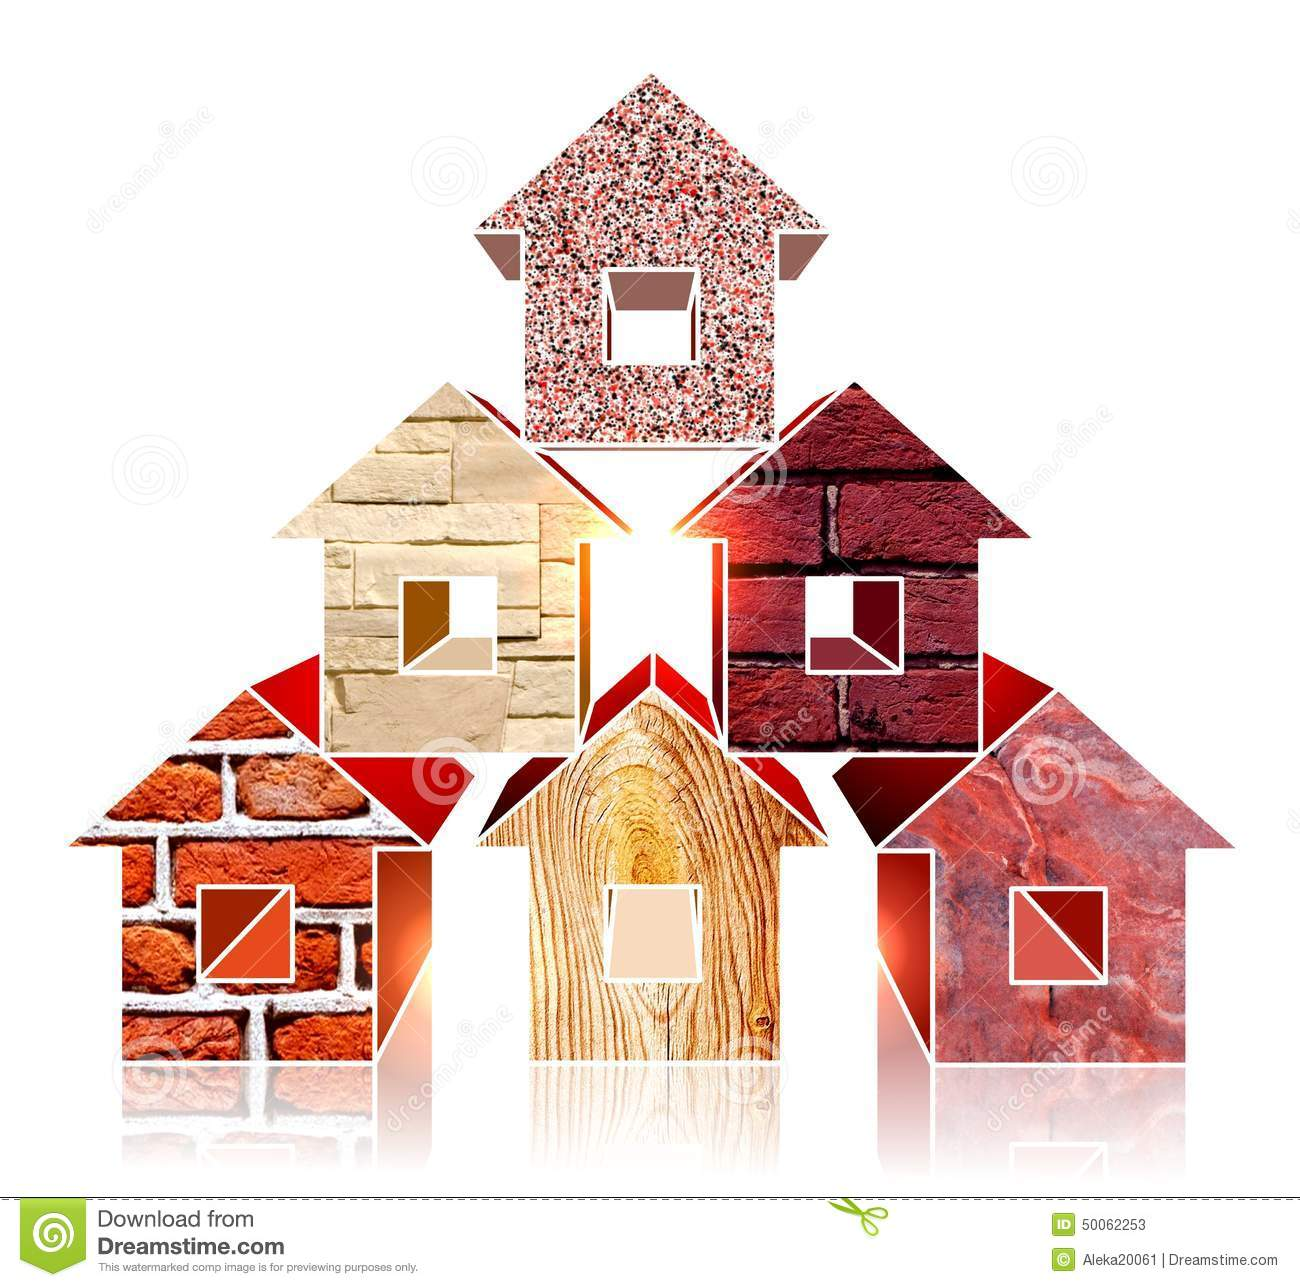 Building materials stock image image of granite house for Materials needed to build a house